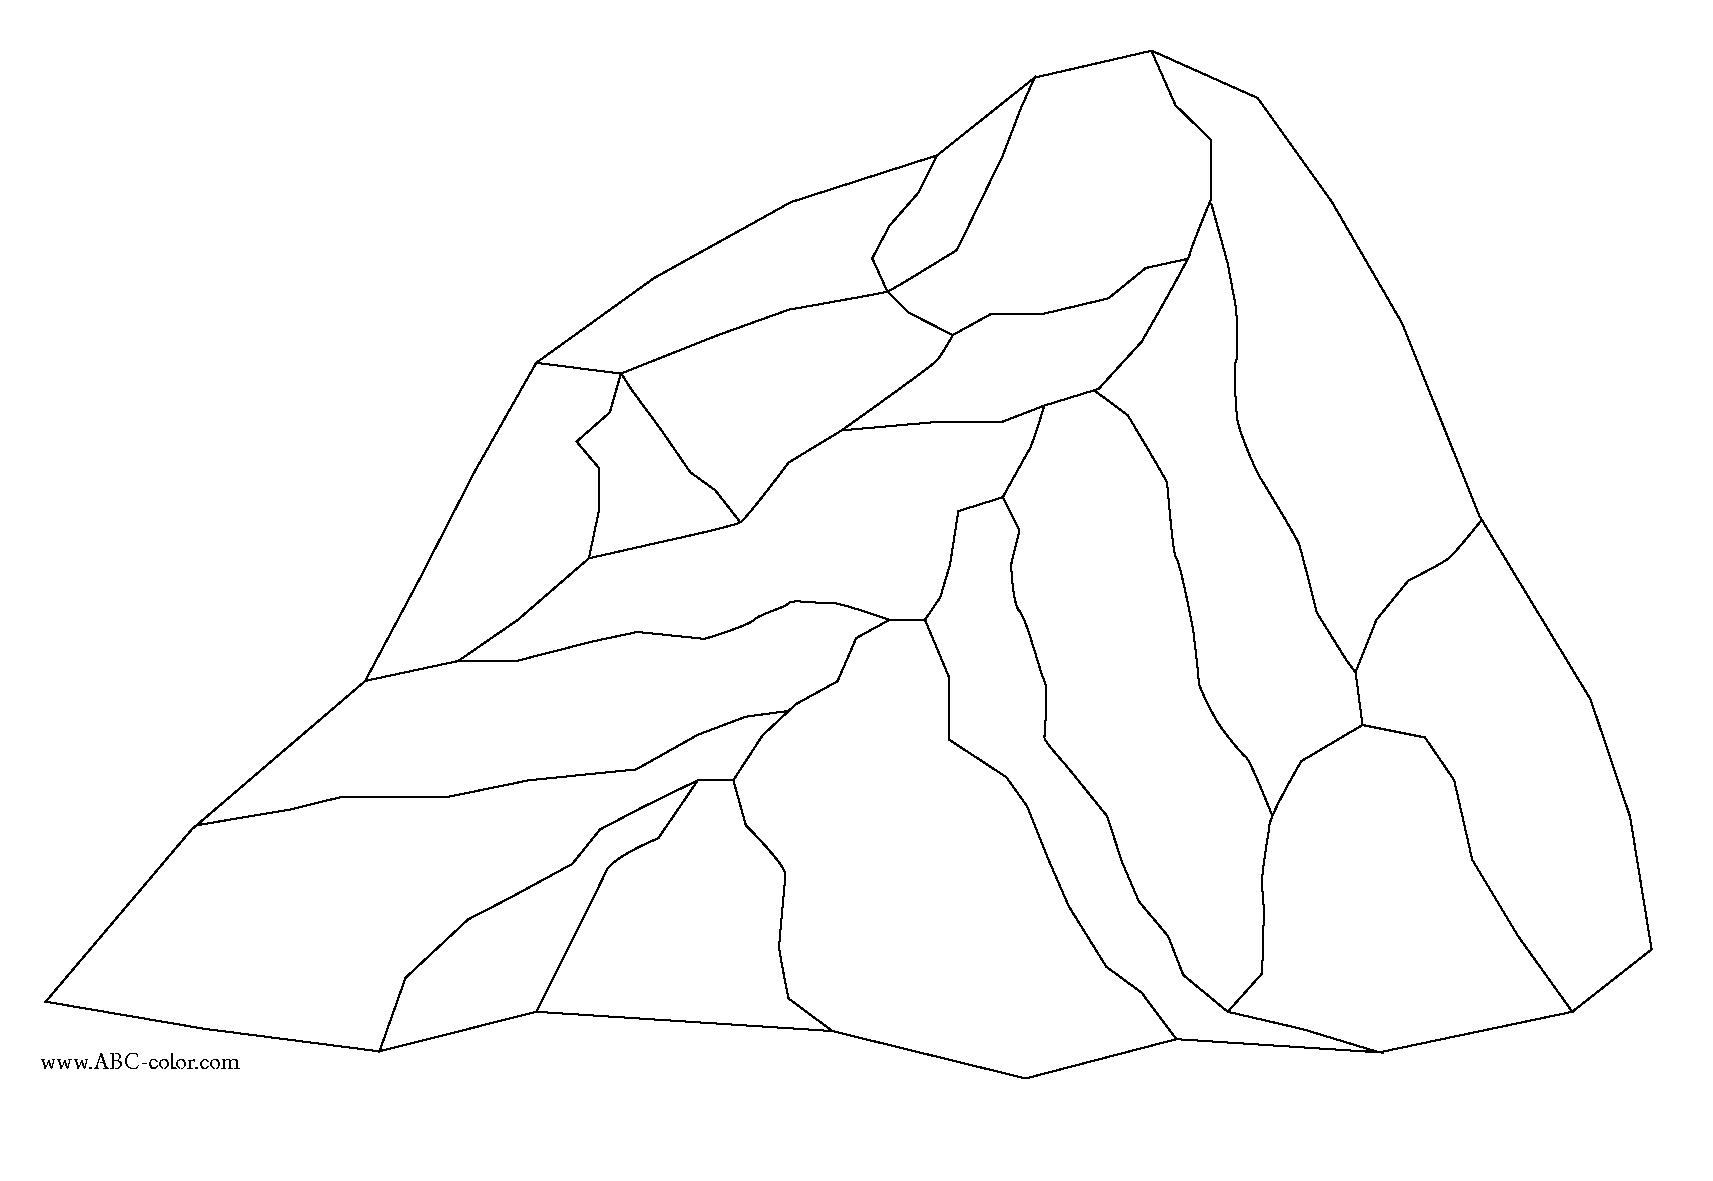 Coloring Pages Rocks And Minerals Coloring Pages rock coloring pages to download and print for free spaceship pages